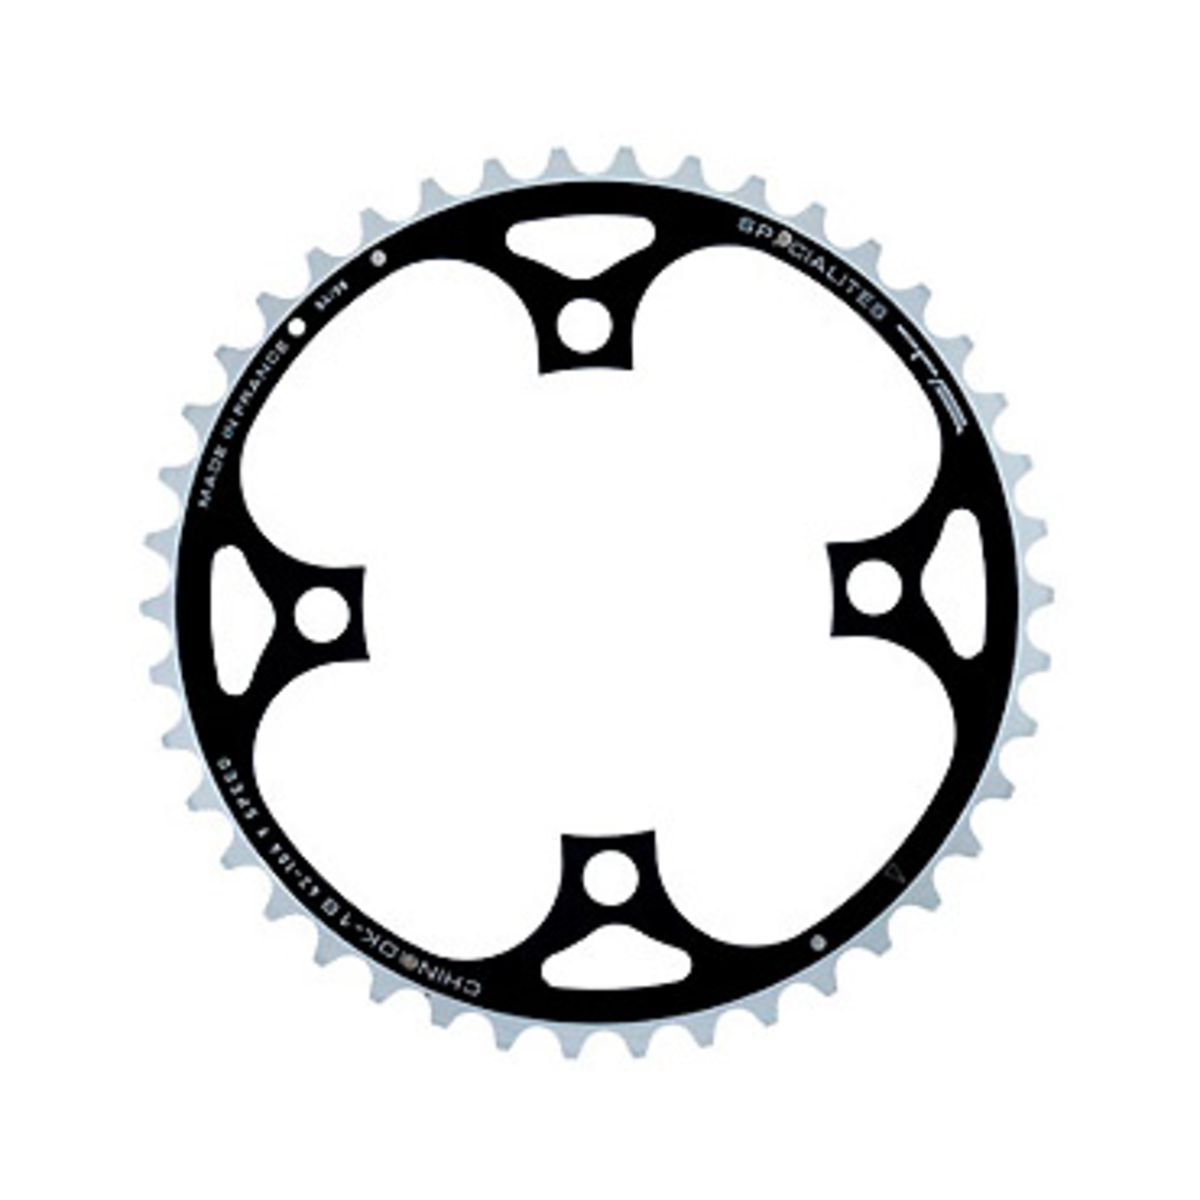 TA Chinook 9-speed 42-tooth chainring | Klinger